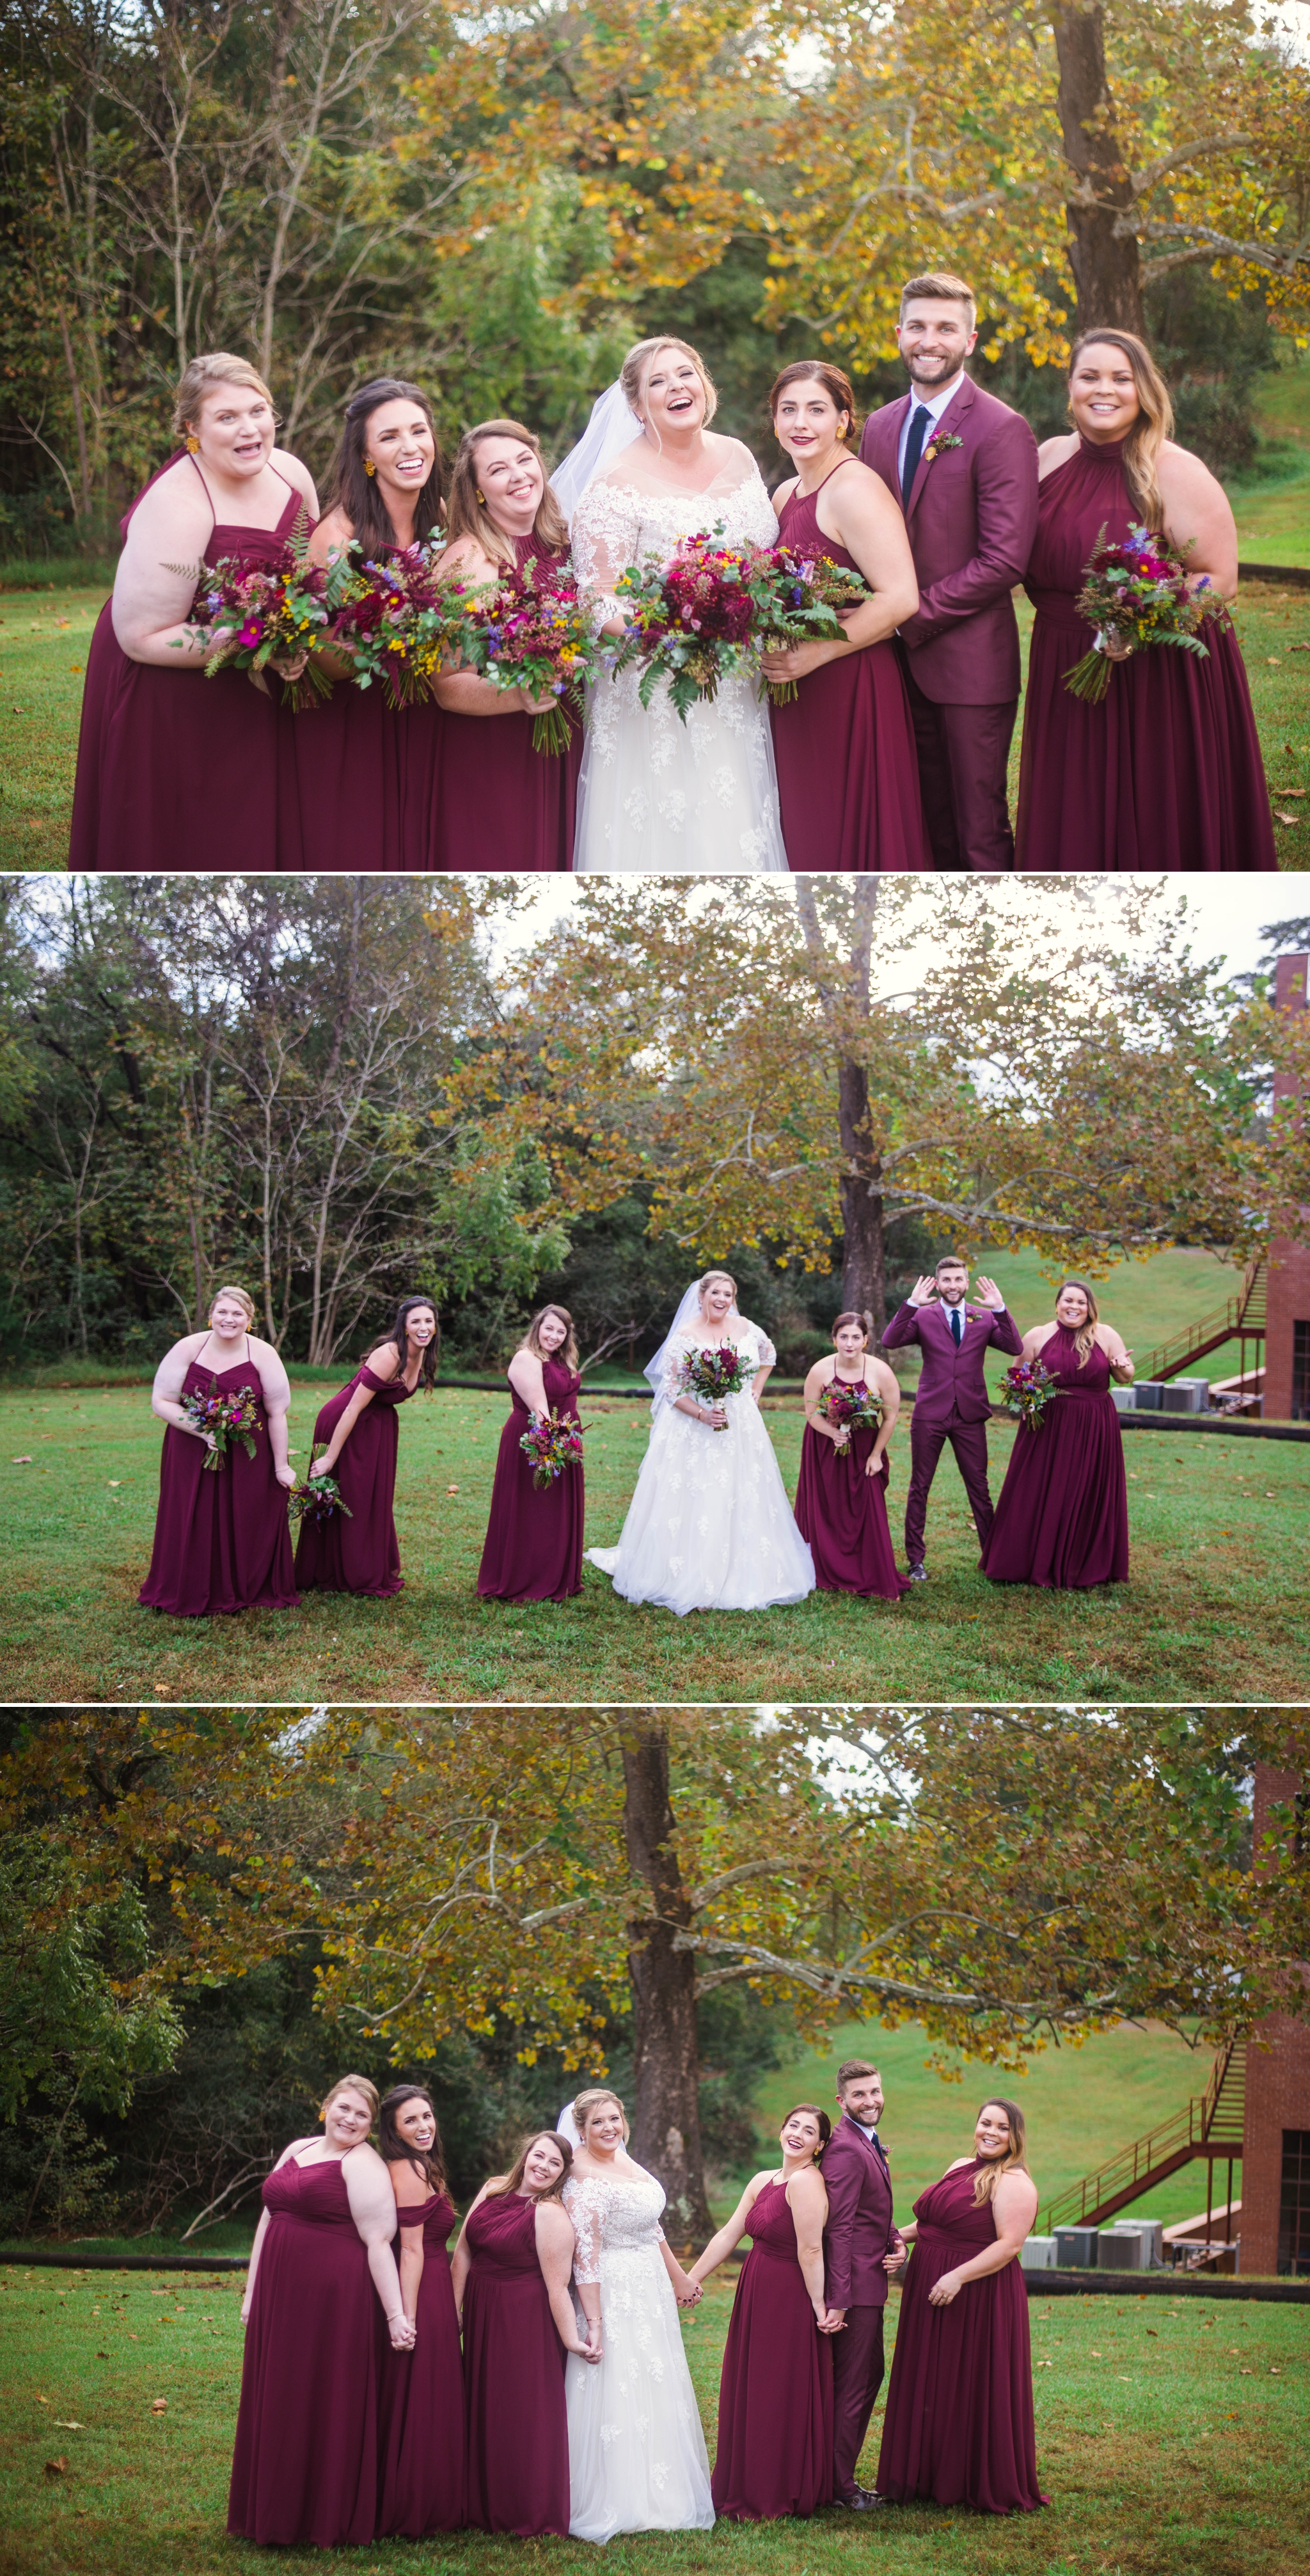 Bridesmaids Portraits in Burgundy Dresses - Brittany + Douglas - Forest Hall at Chatham Mills in Pittsboro, NC - Raleigh North Carolina Wedding Photographer